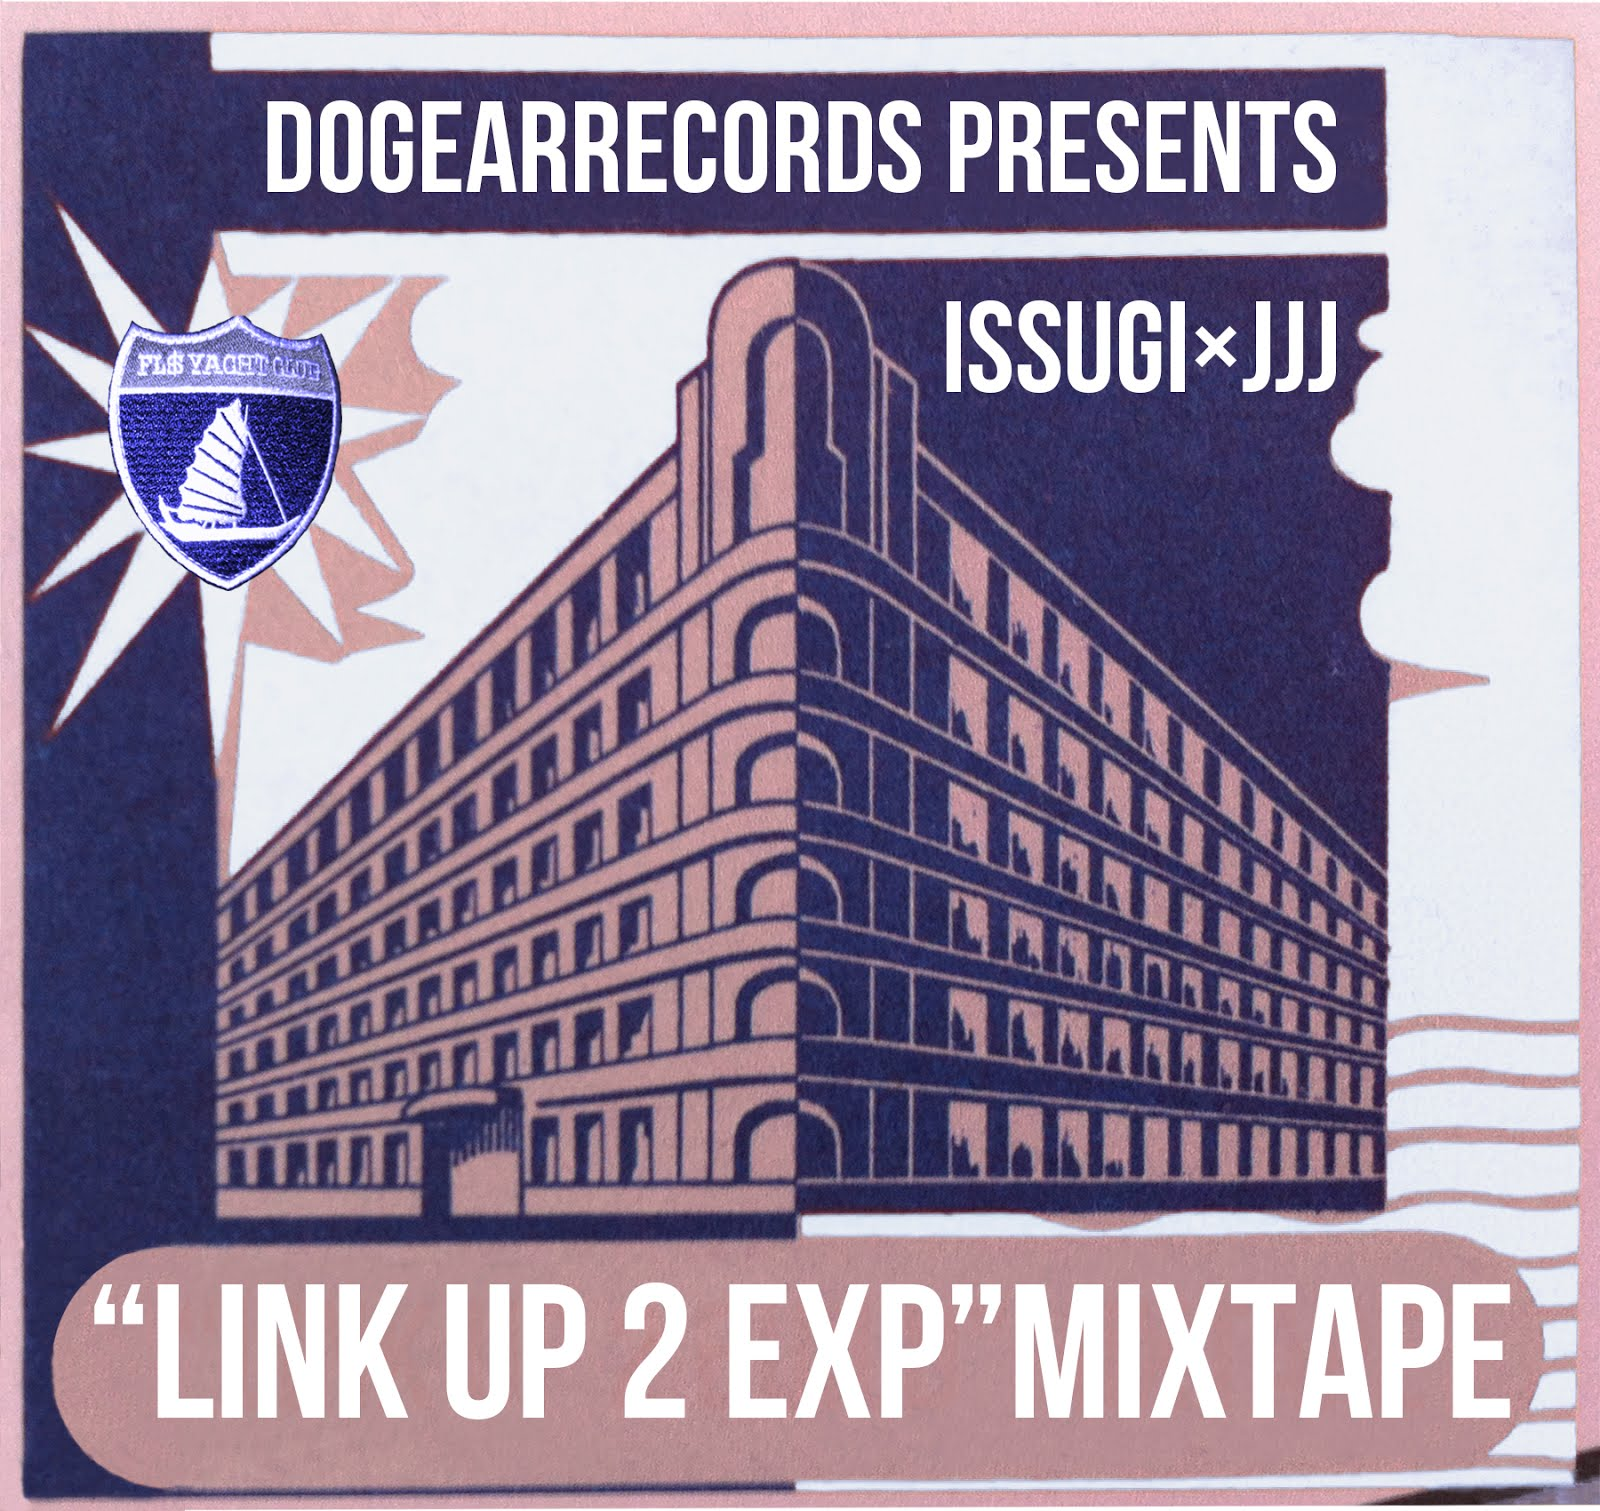 LINKUP2EXP FREEMIXTAPE